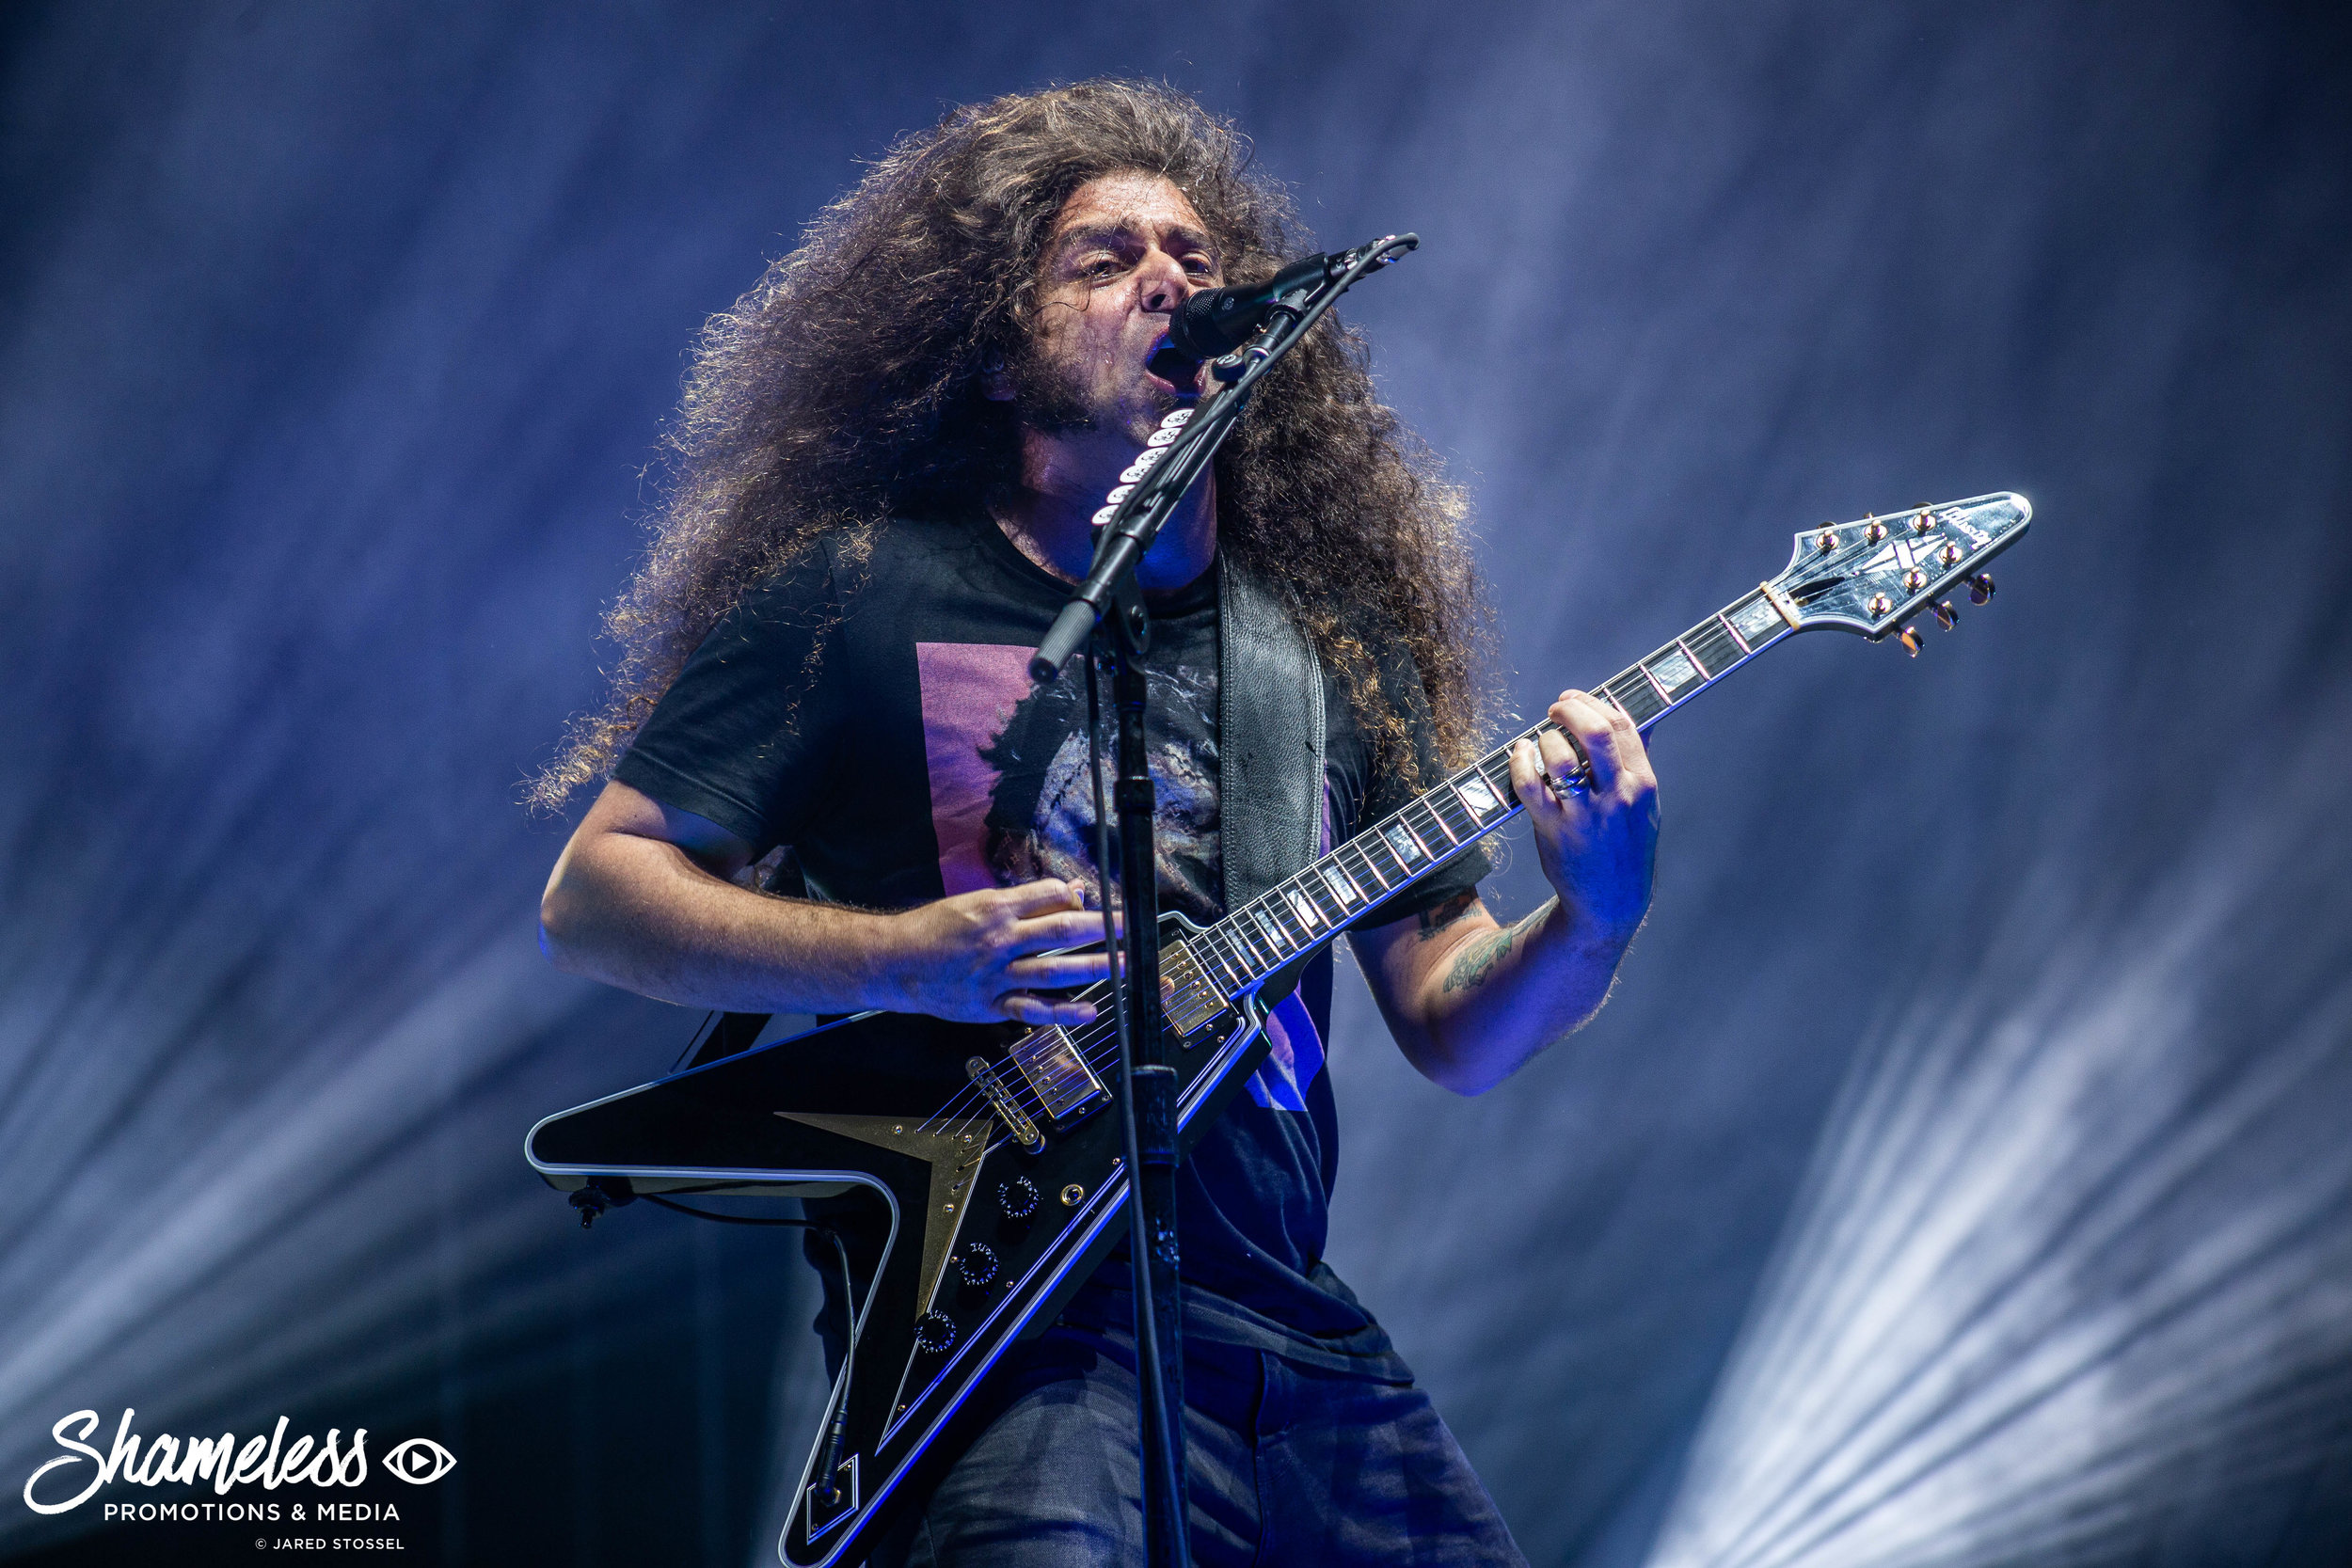 Coheed & Cambria and Taking Back Sunday @ The Greek Theatre: August 2018